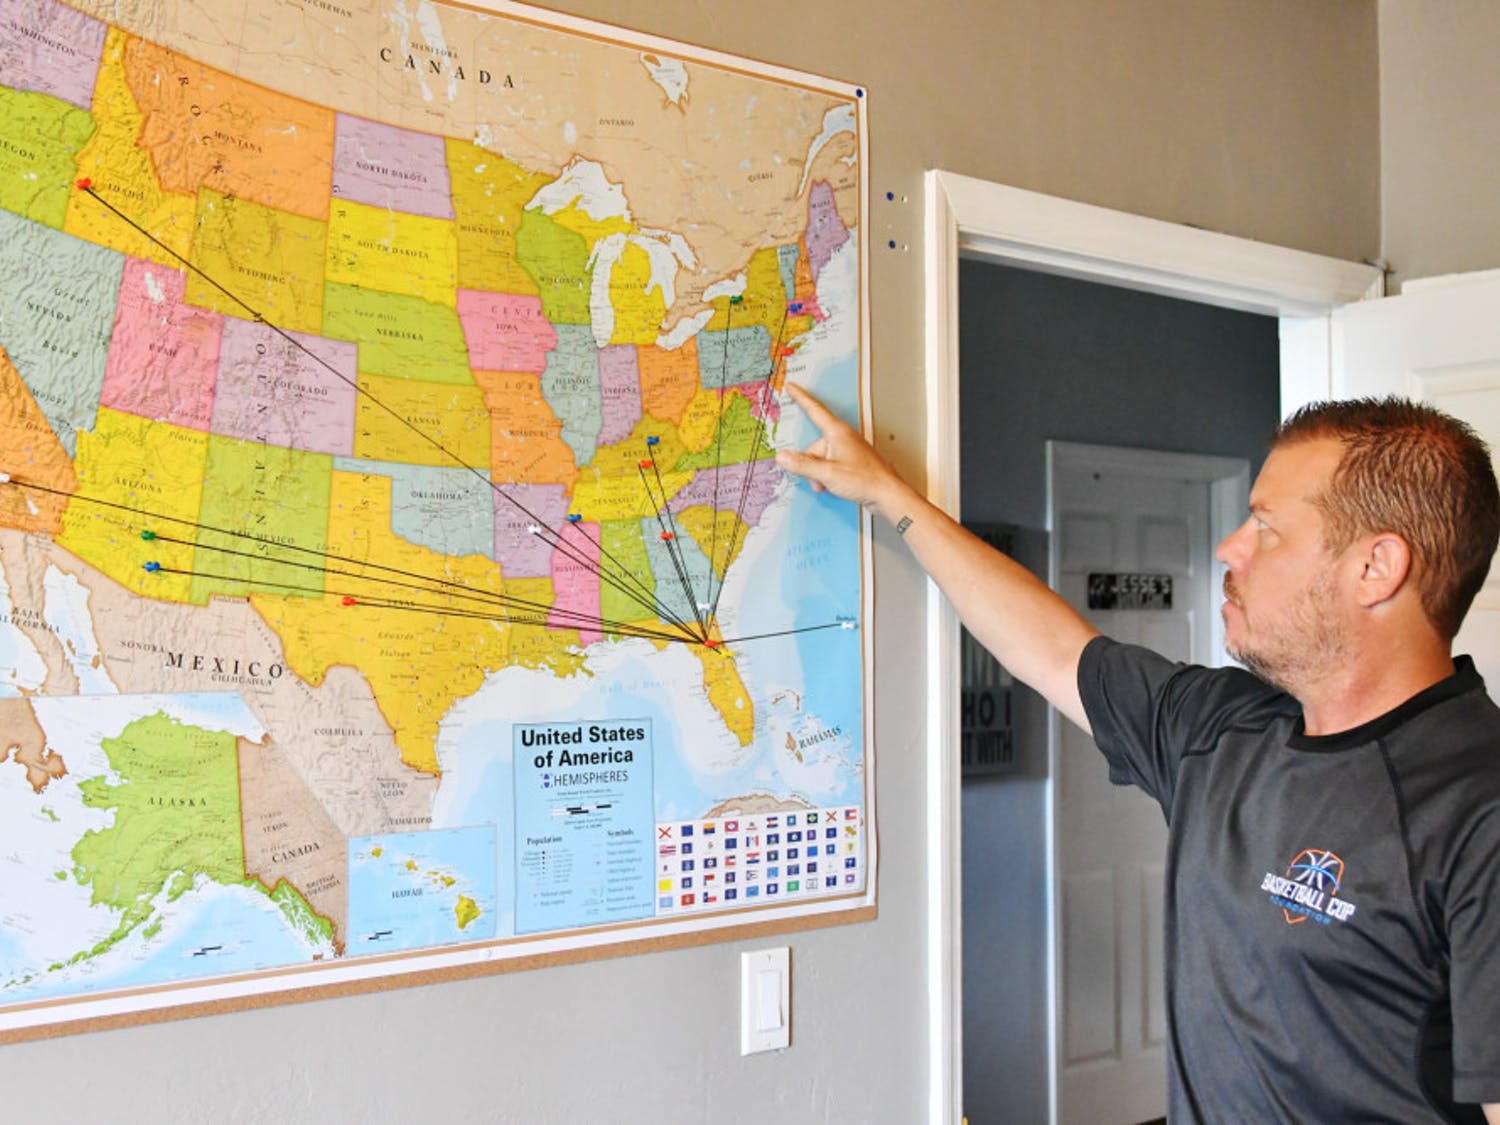 Pointing at a map dotted with colored pushpins, Gainesville Police Officer Bobby White shows where he has delivered basketball hoops and balls as part of his Basketball Cop Foundation.